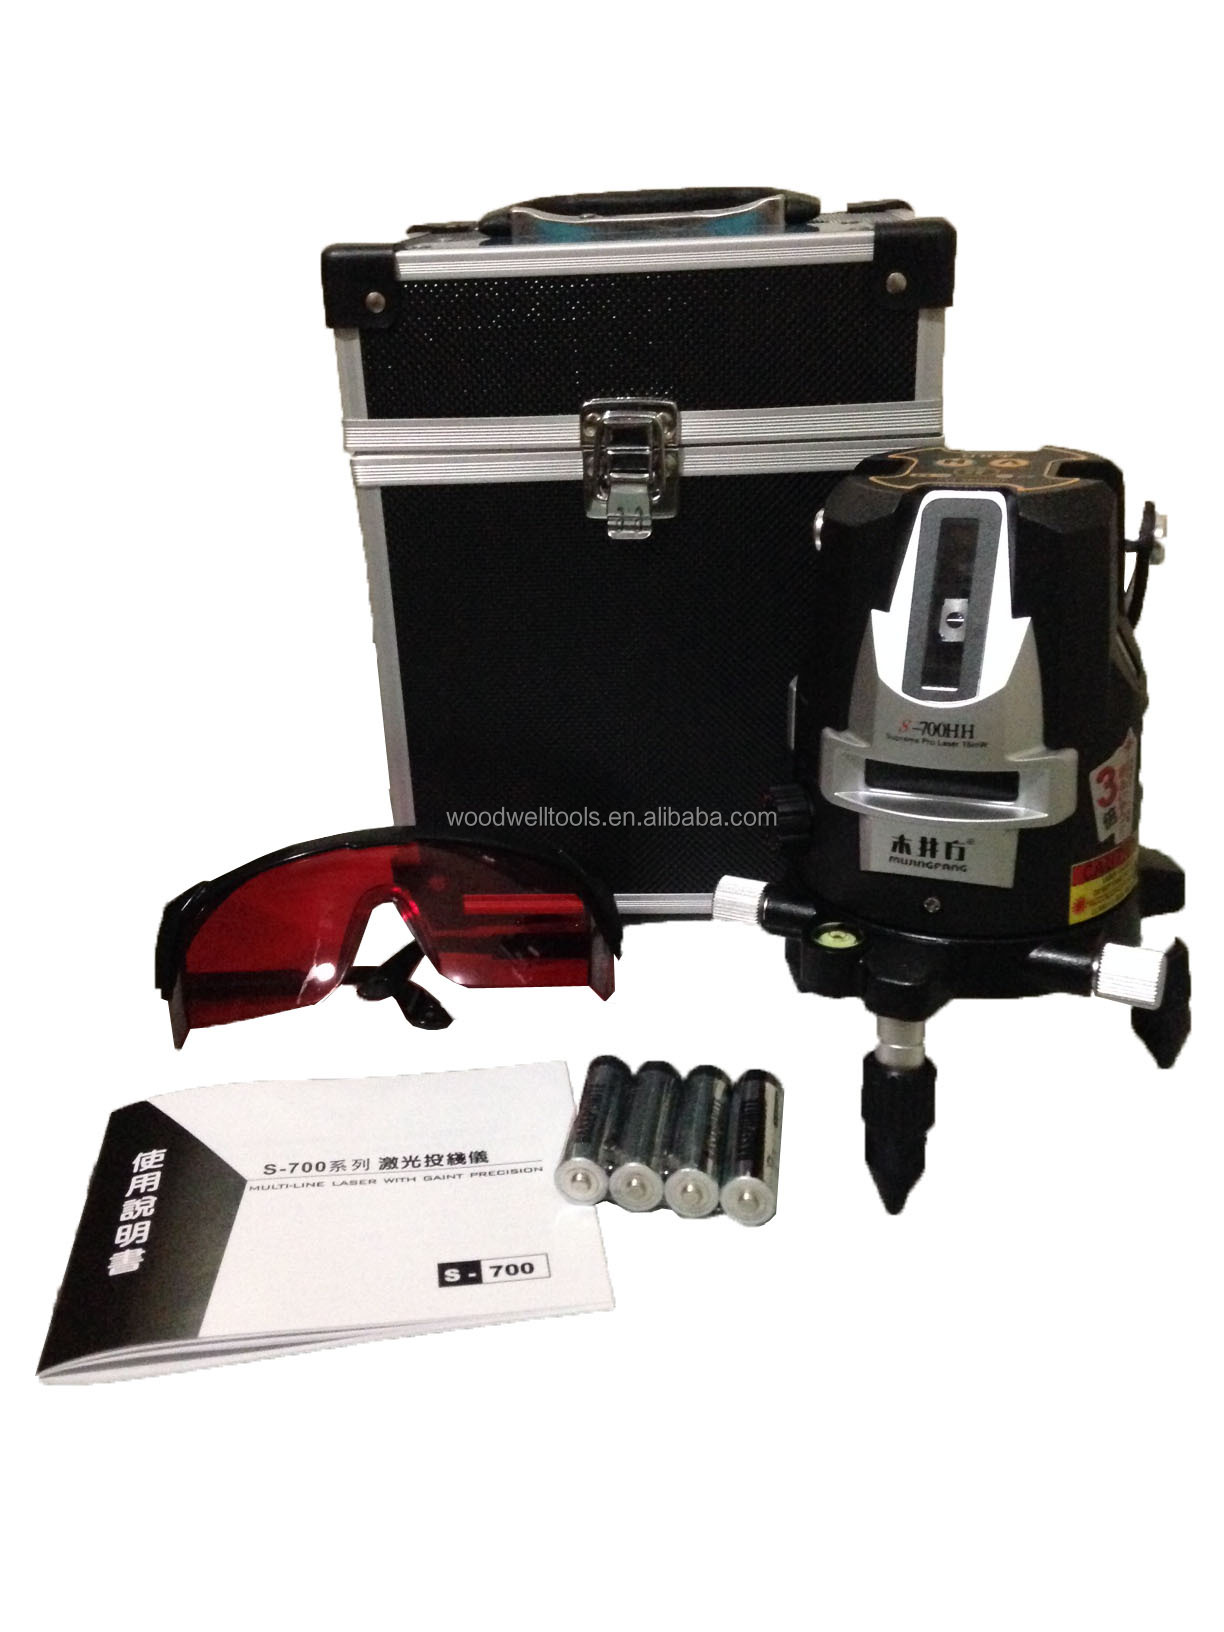 2014 New Model ,4V3H1D, professional laser level S-700HH